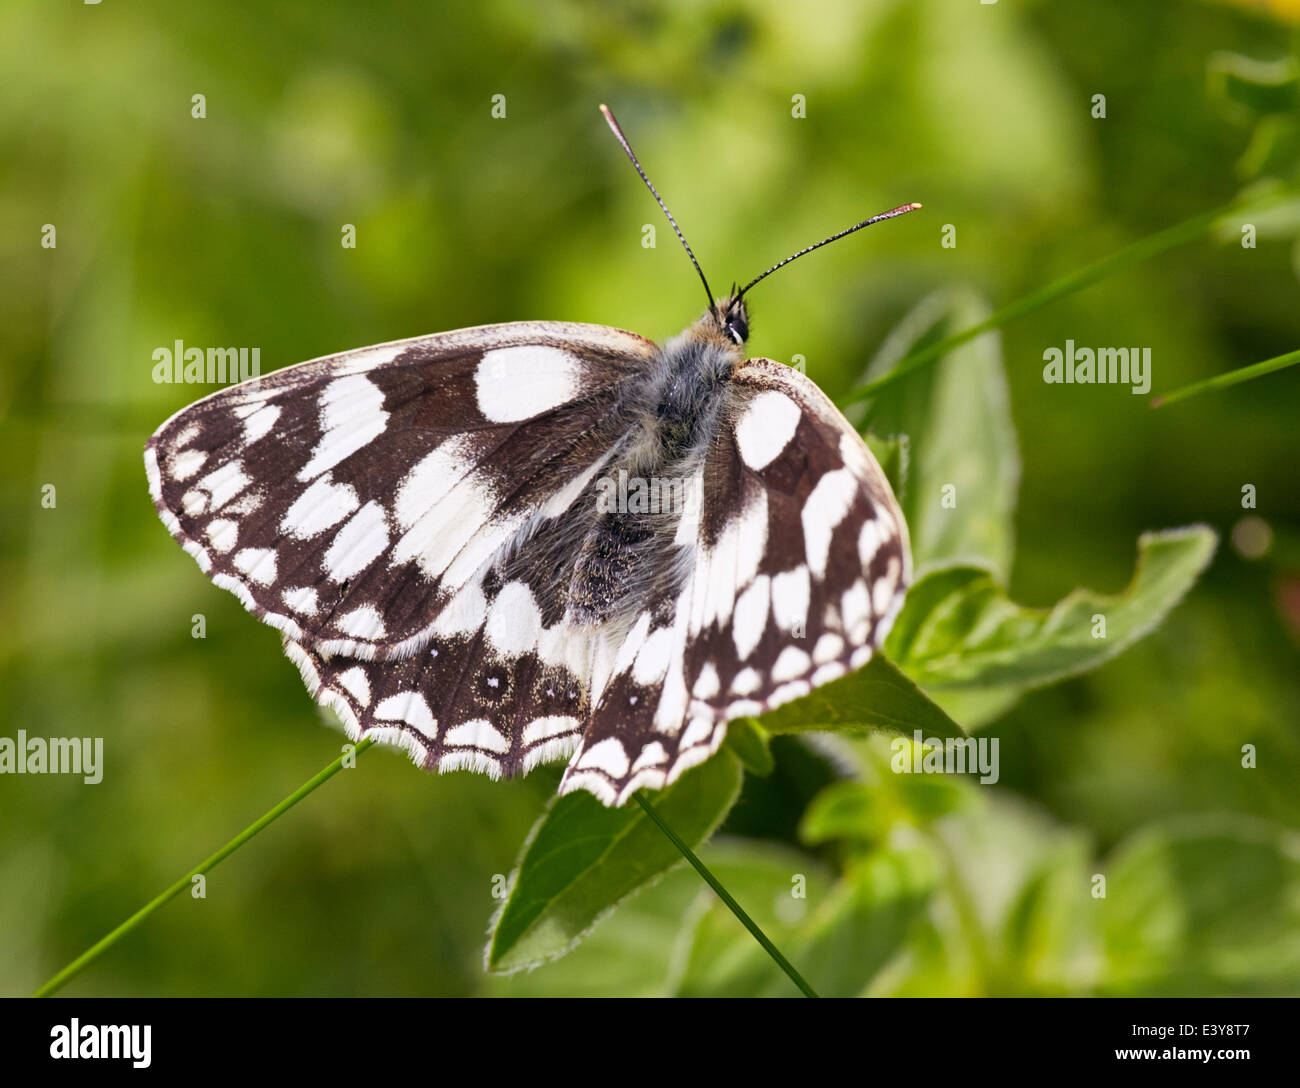 Marbled White butterfly. Box Hill, Dorking, Surrey, England. - Stock Image